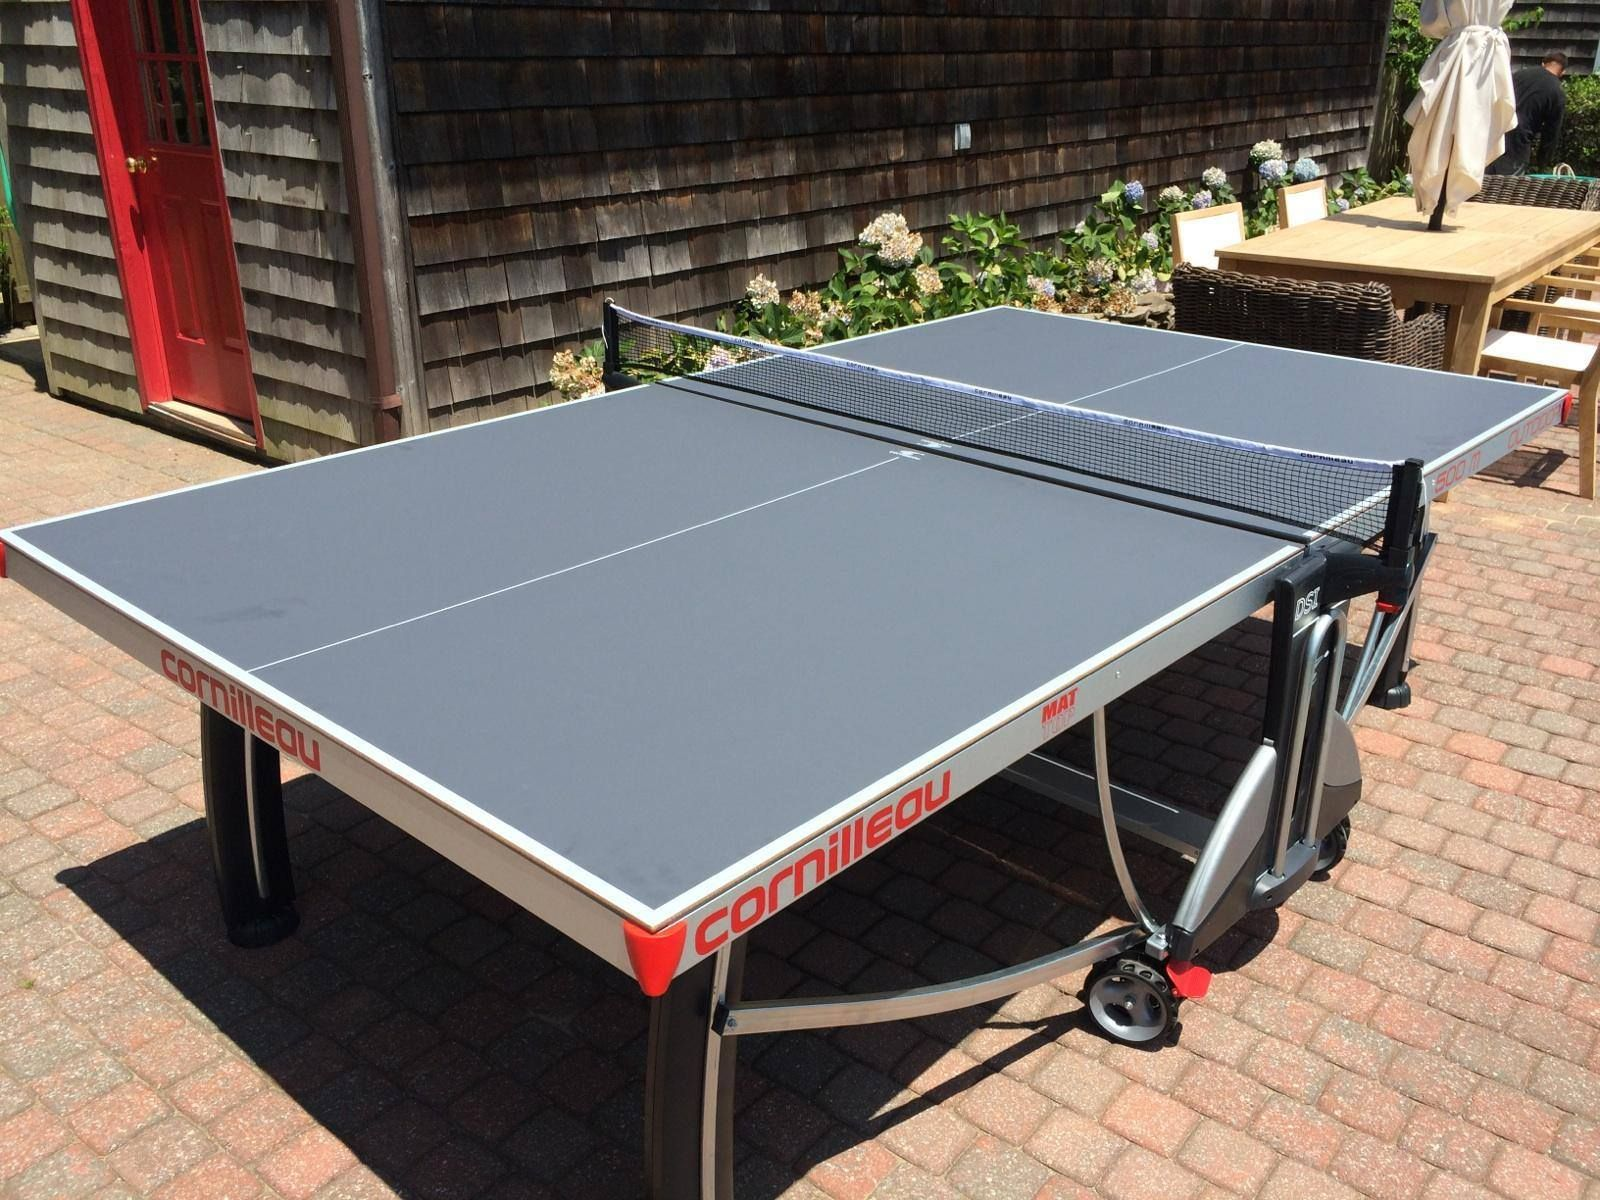 Cornilleau 500m outdoor table tennis table southhampton ny for the home pinterest - Table cornilleau 500m outdoor ...